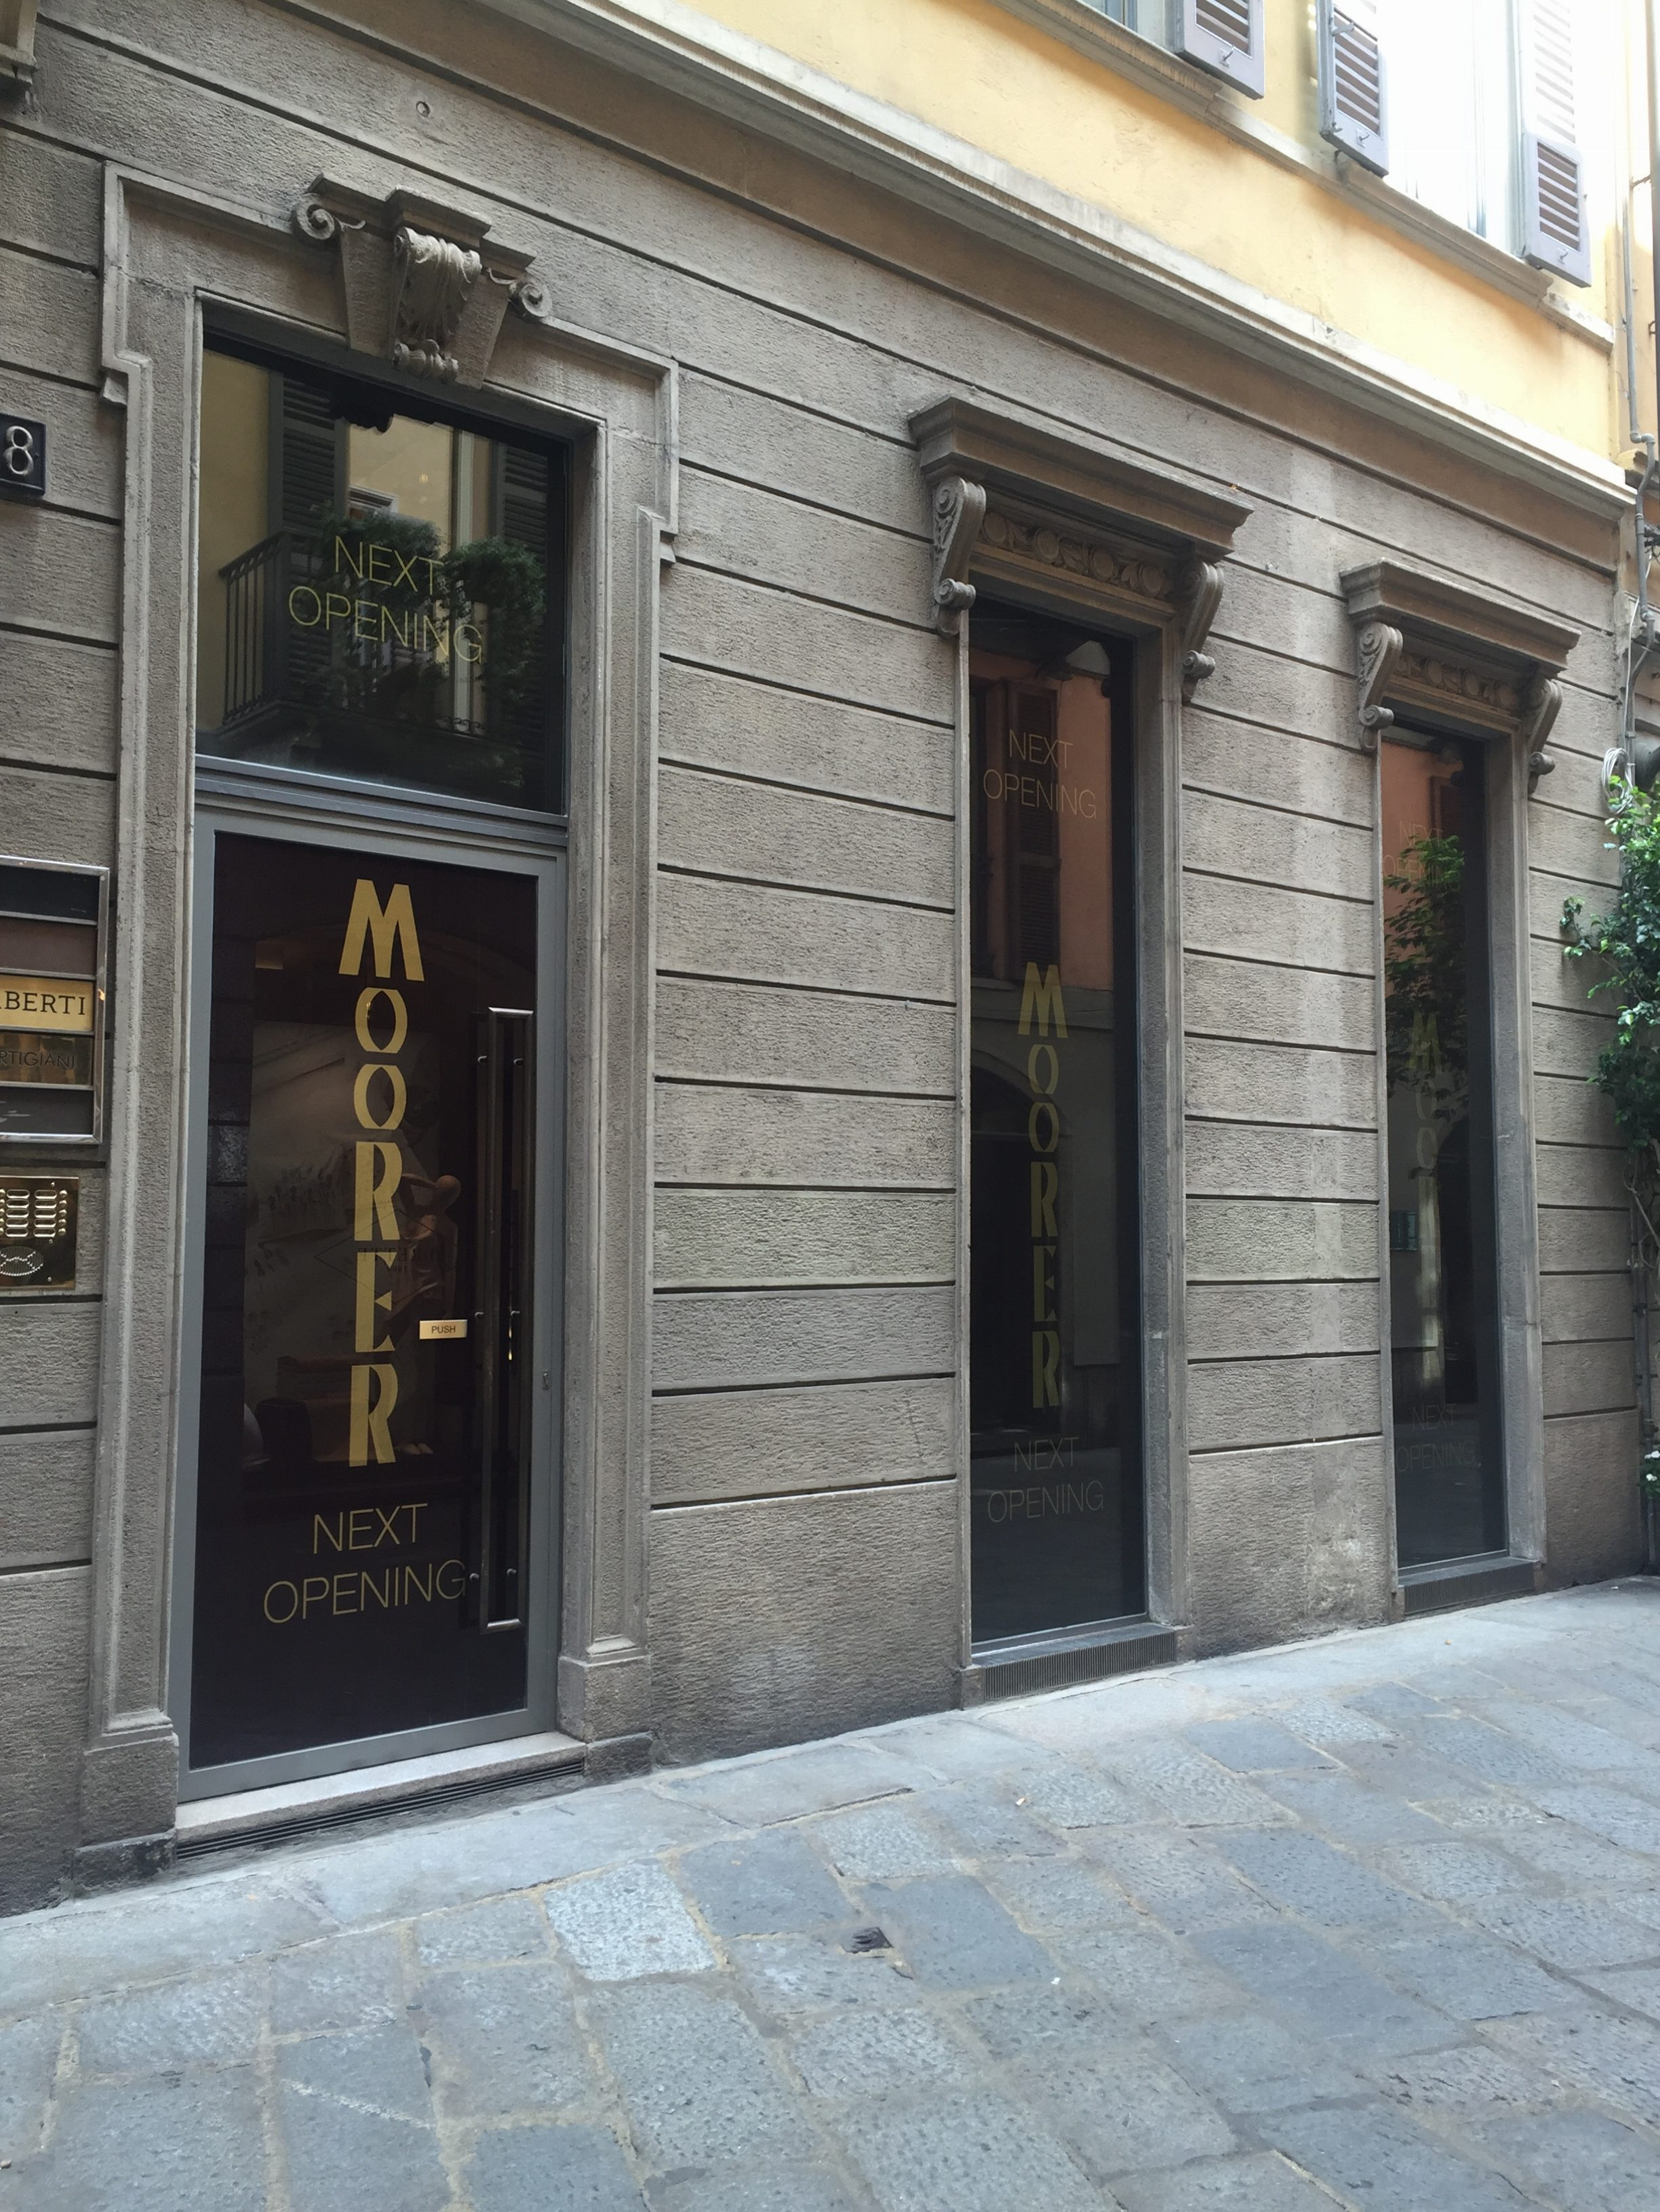 Moorer worldwide Flagship store – A great brand space by Newtone is coming, stay tuned.